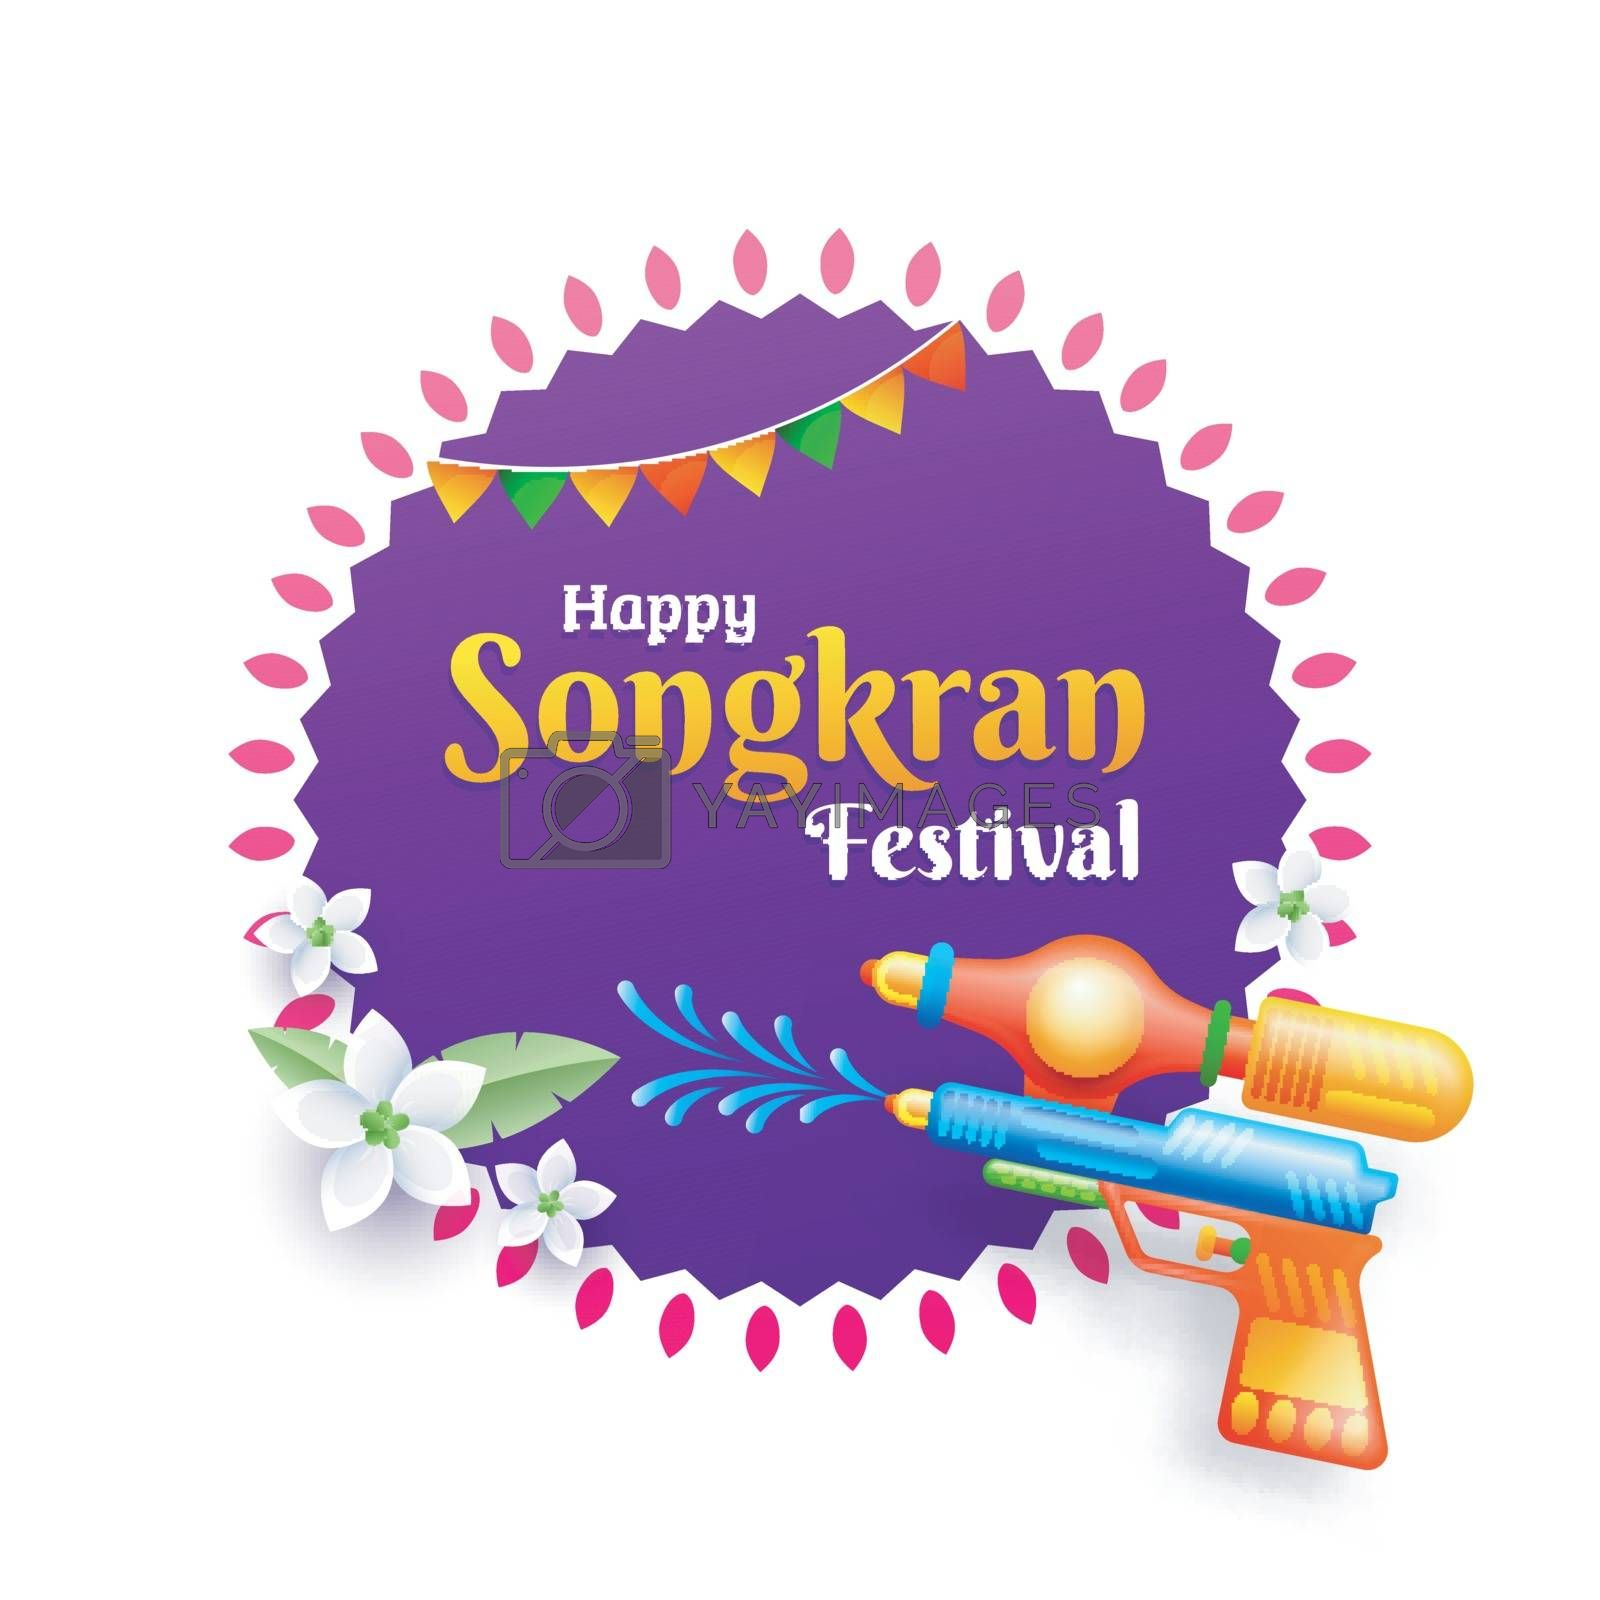 Royalty free image of Happy songkran festival celebration poster or flyer with illustr by aispl